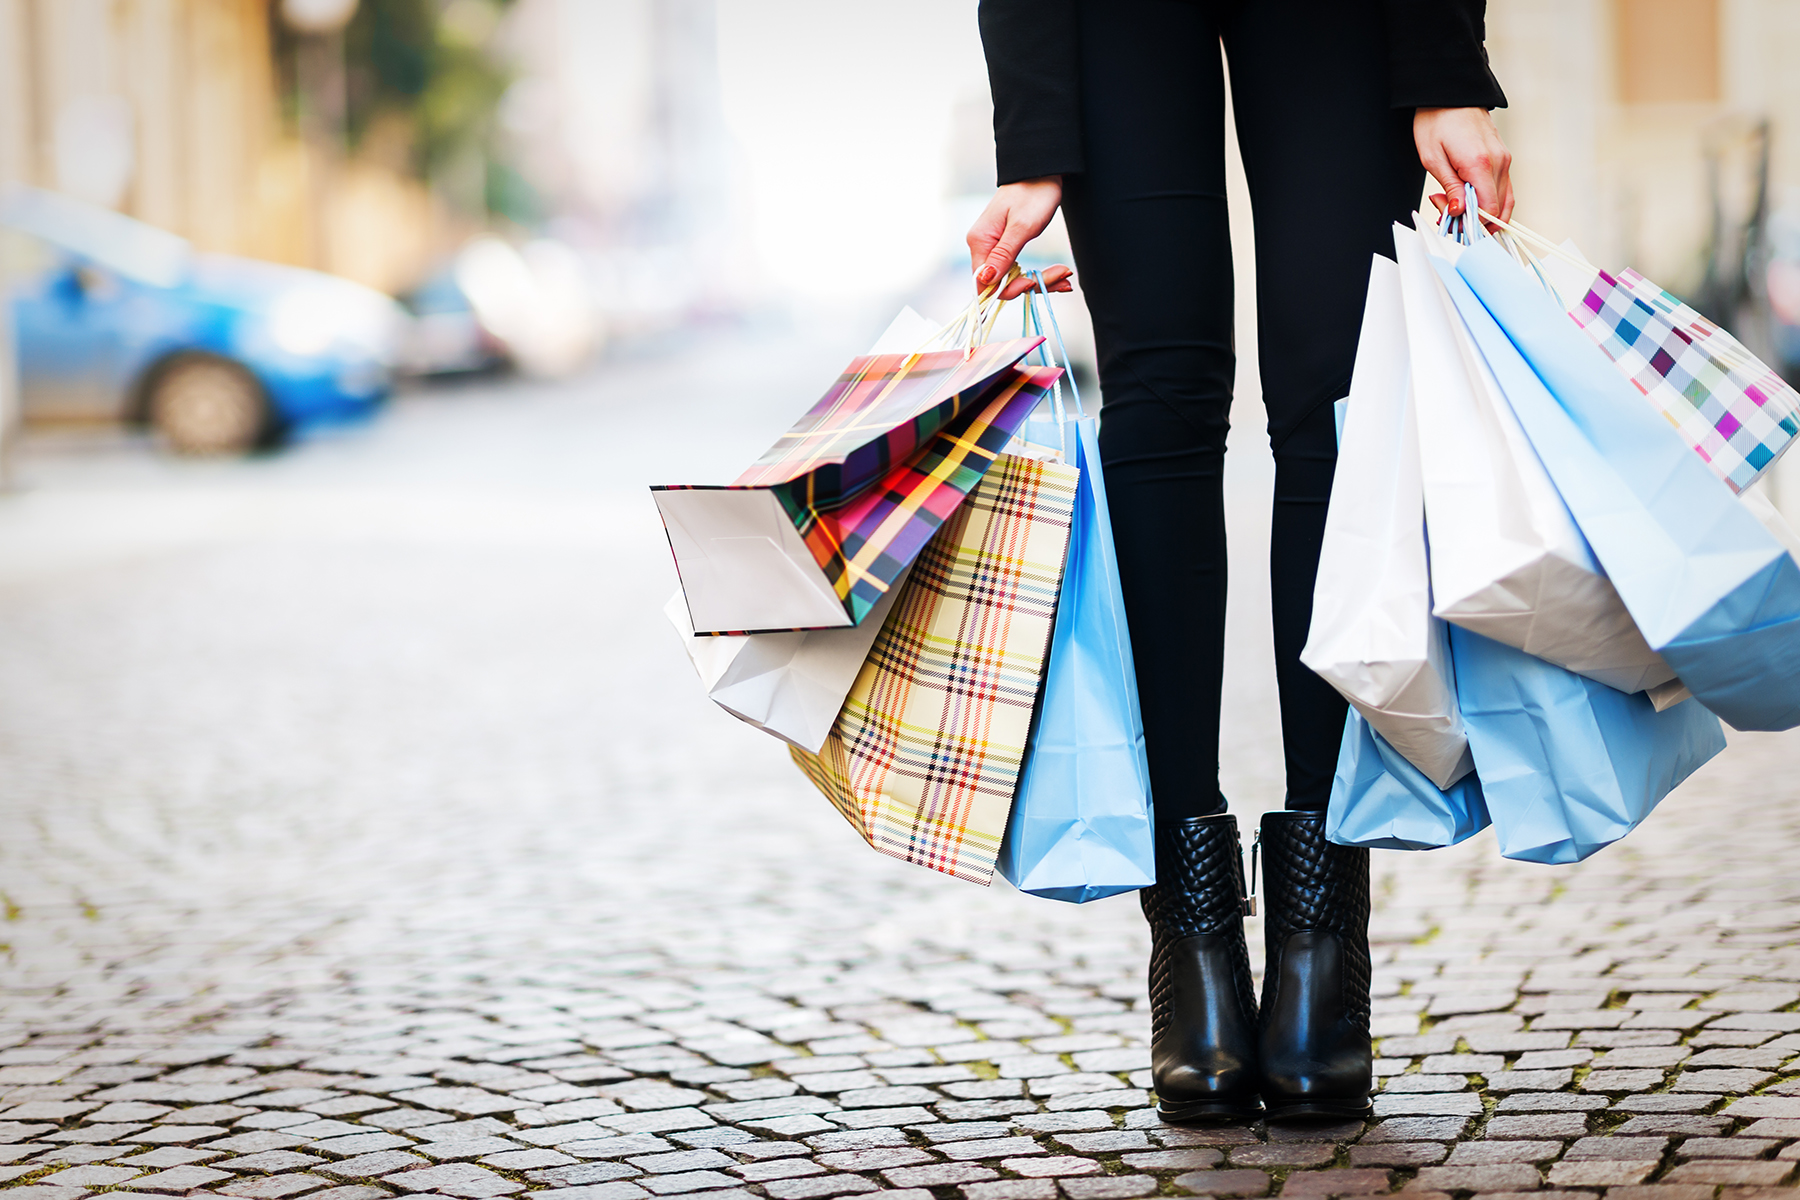 Woman wearing black leggings and boots carrying shopping bags